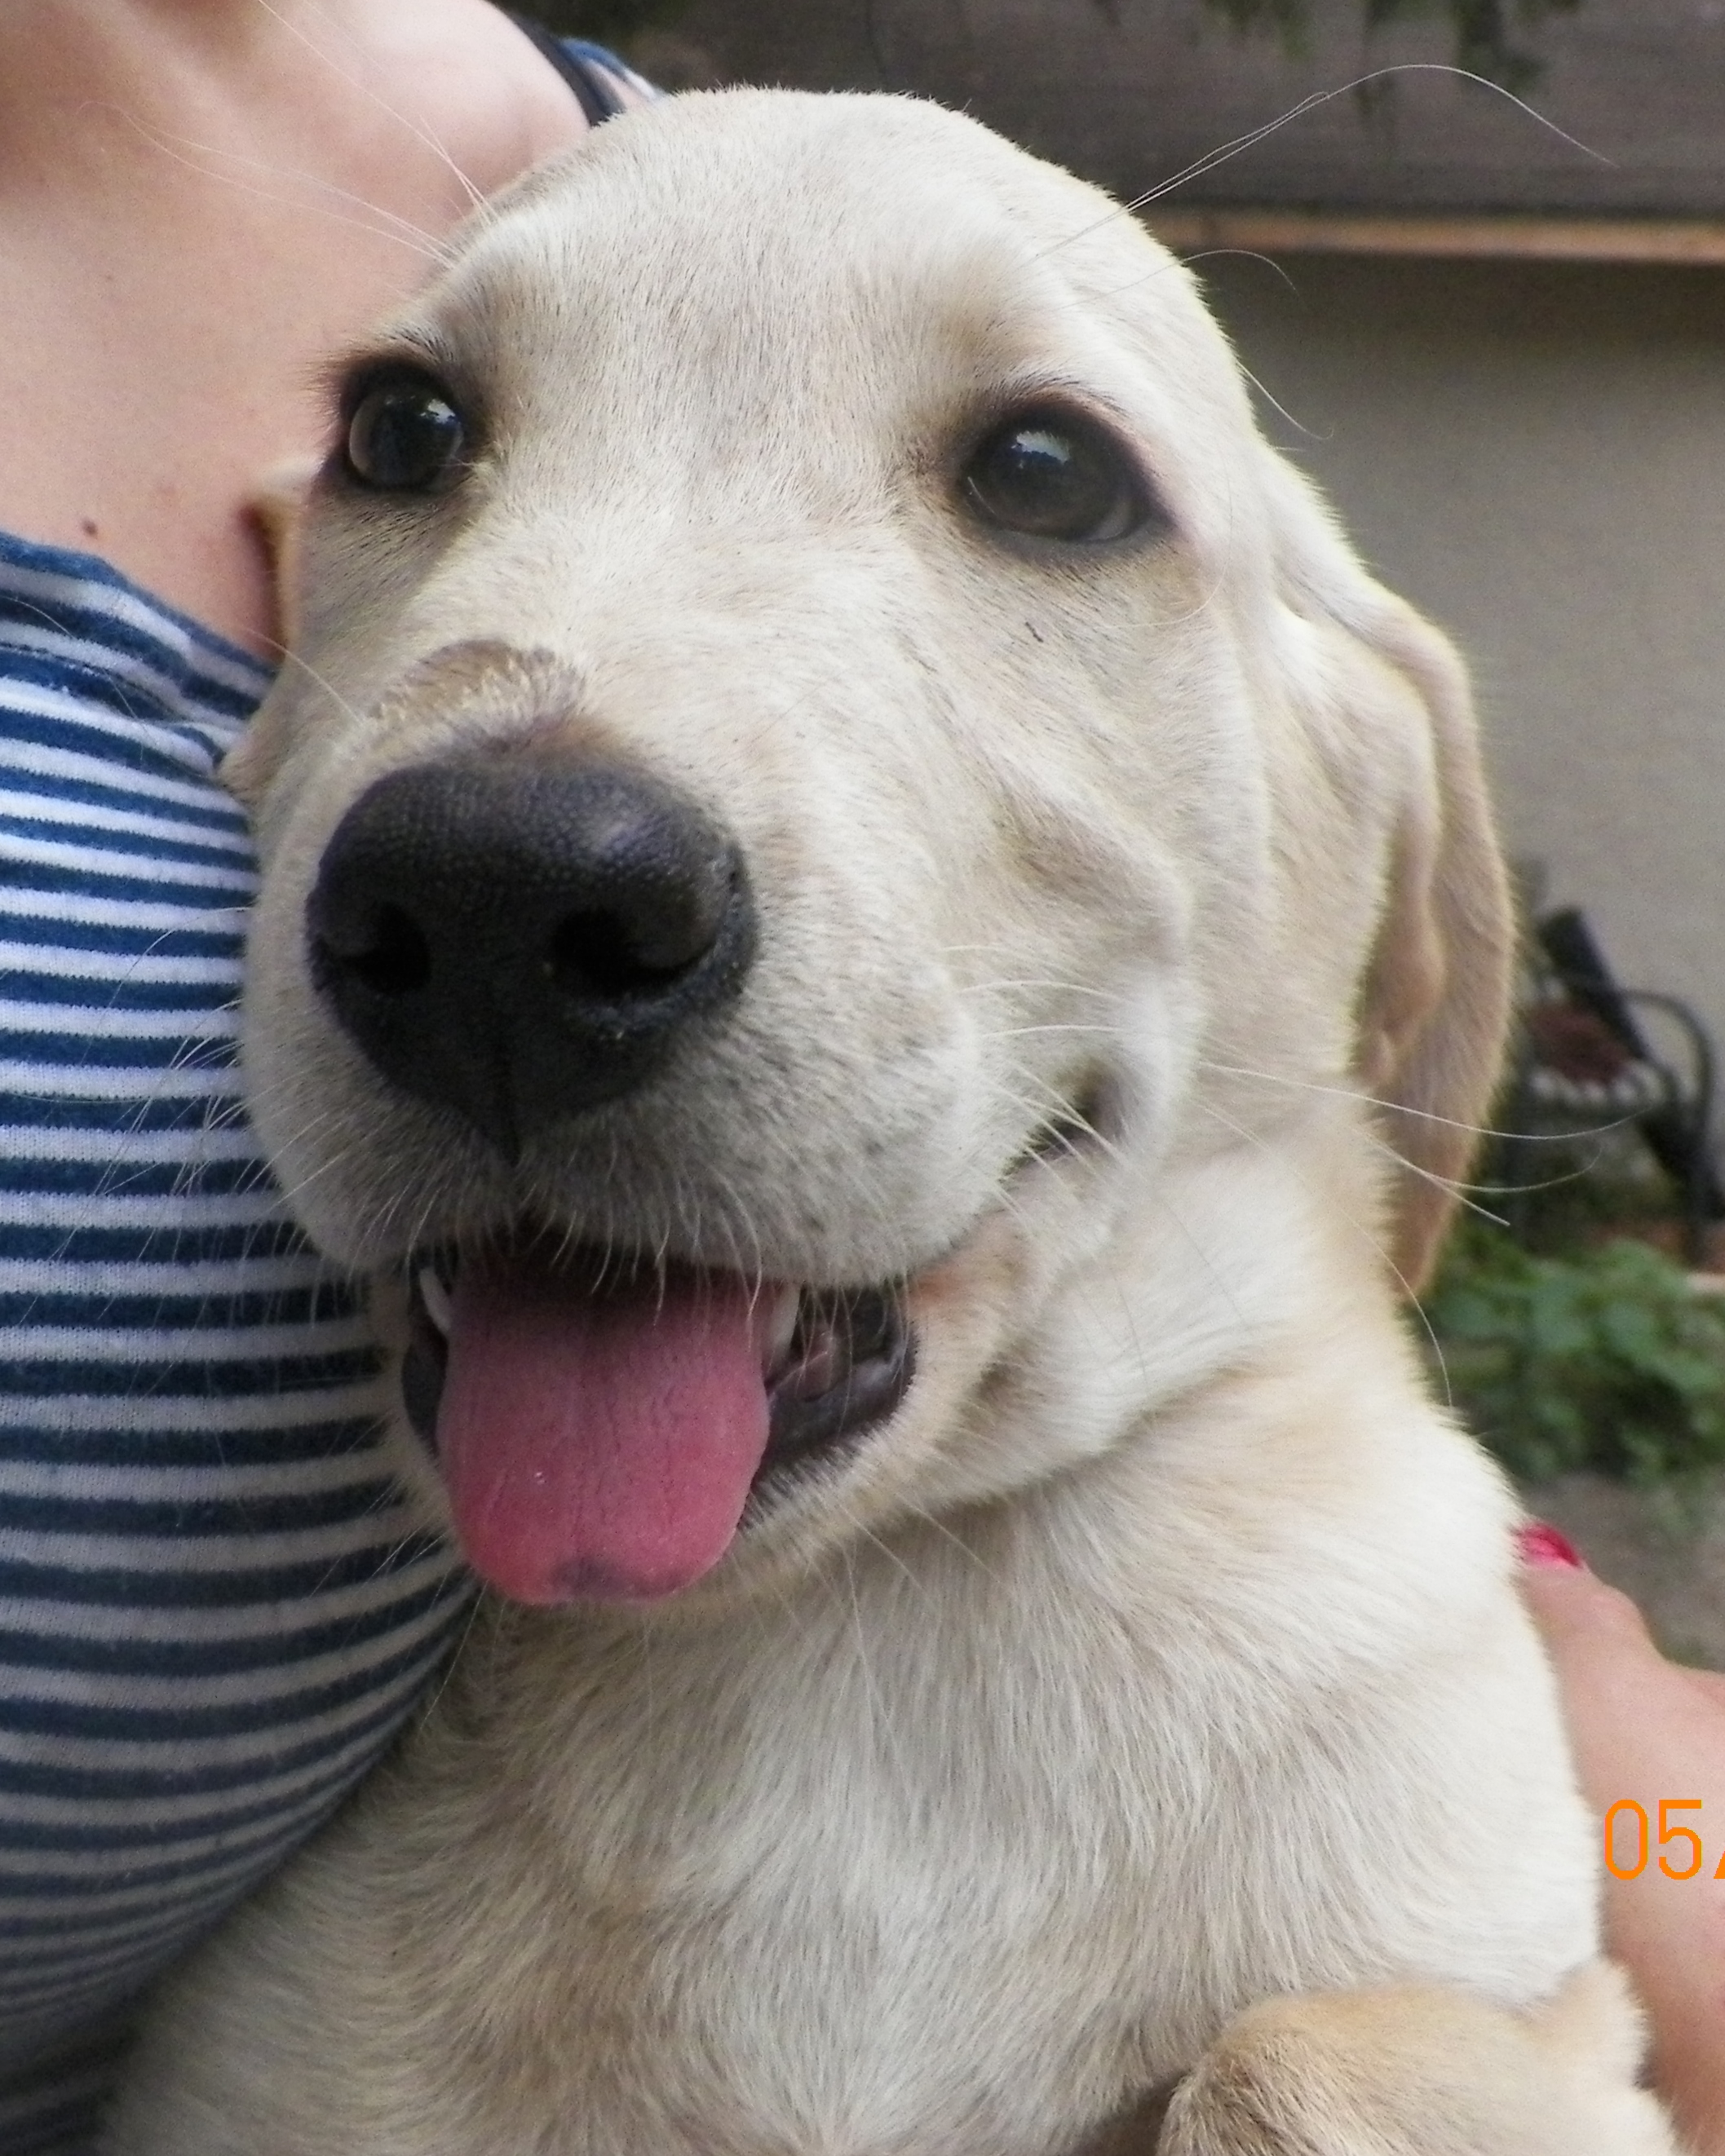 Yellow Lab Mix - Needs a Home